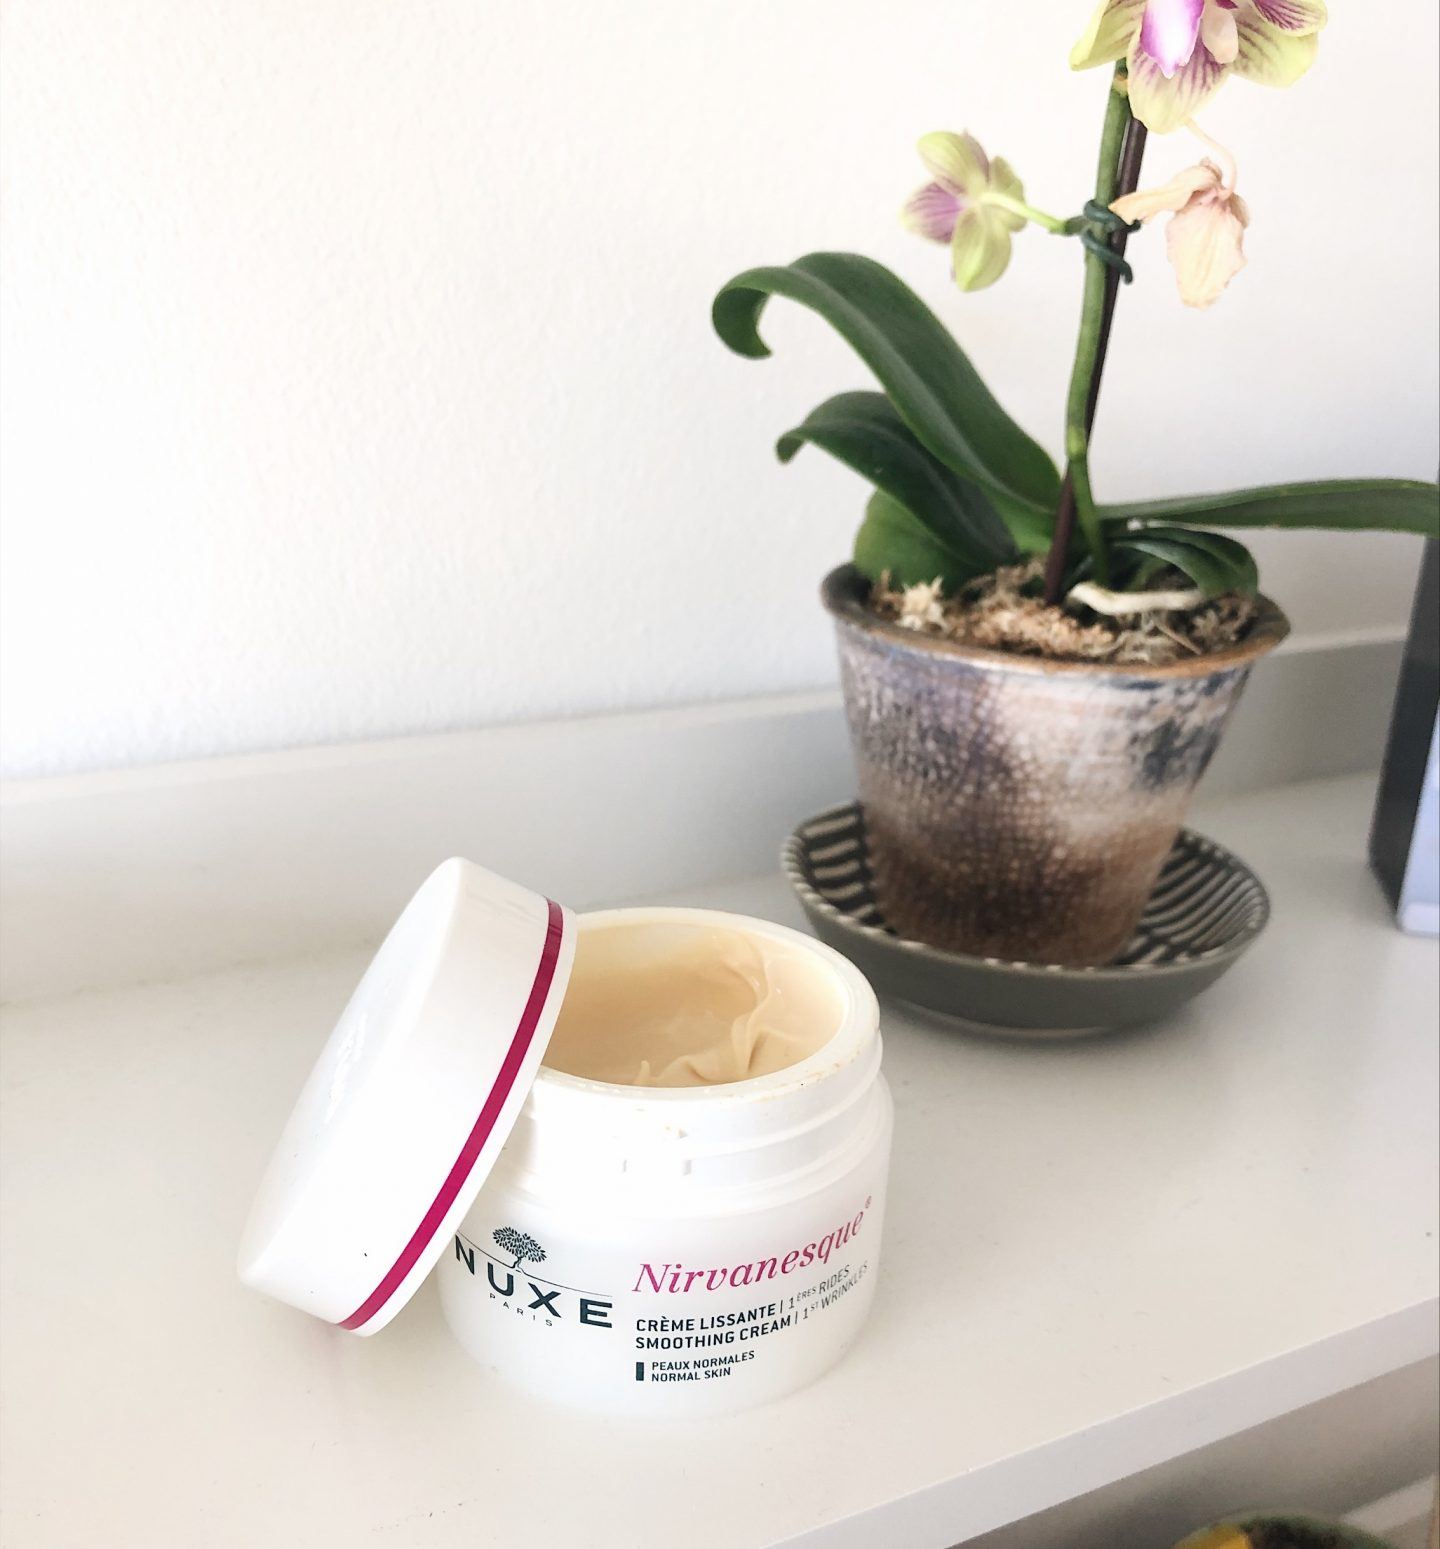 Nuxe Nirvanesque Frist Wrinkles Cream Topknotch Blog Rachael Williams south africa